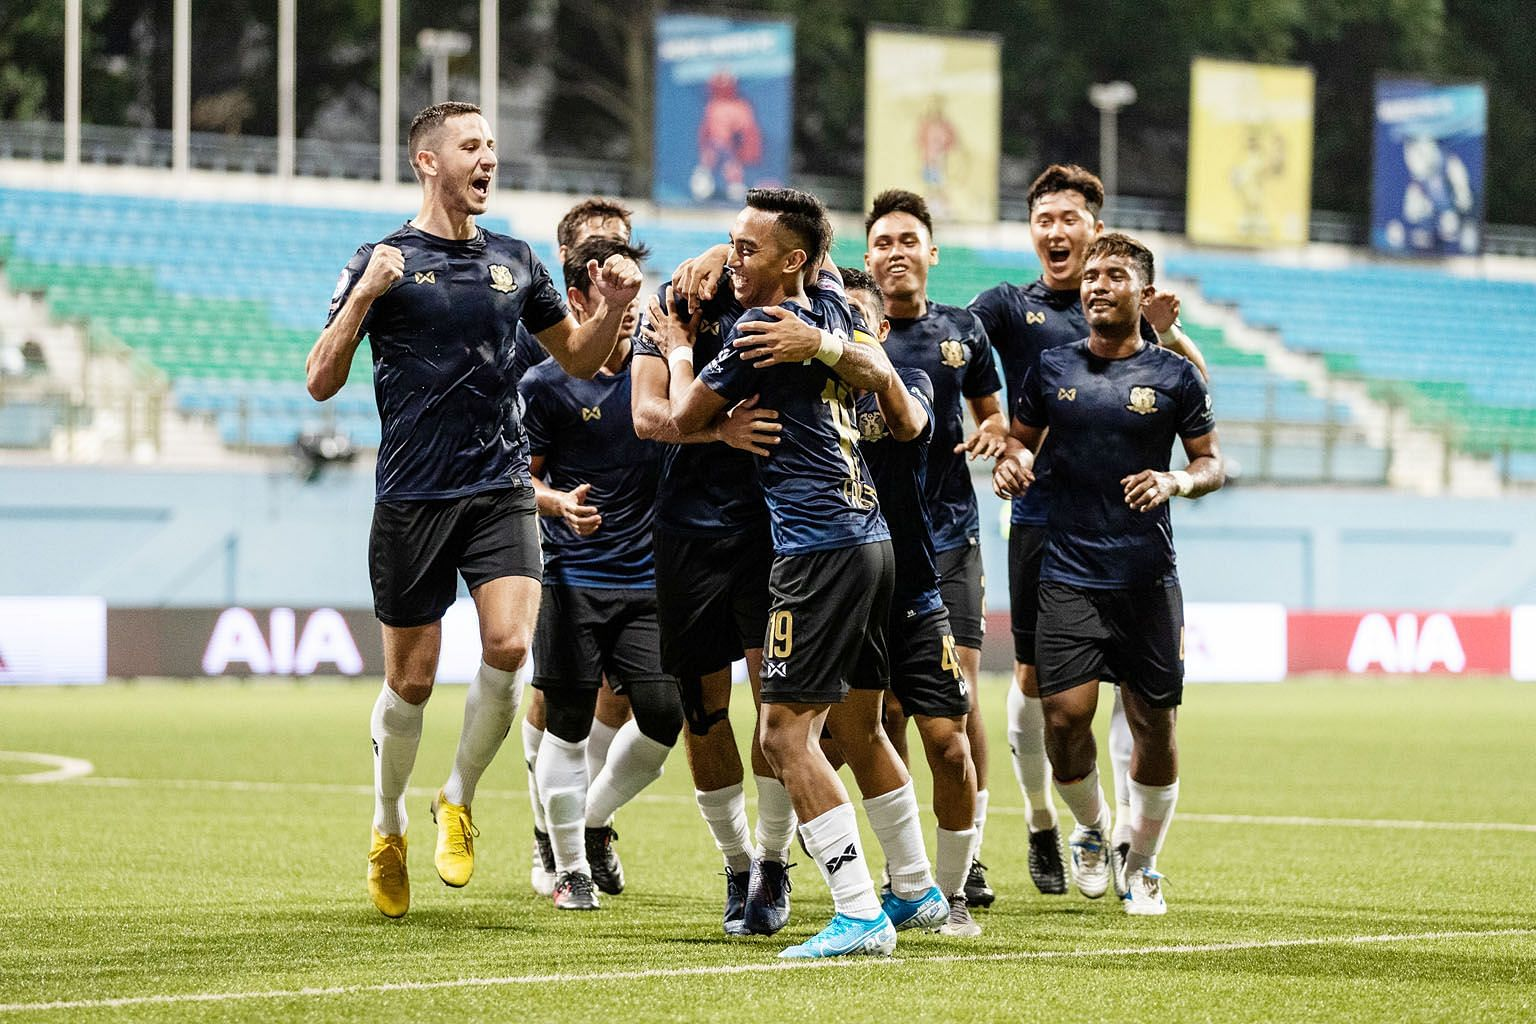 Hougang United players celebrating a goal in their 3-1 win over league leaders Brunei DPMM yesterday. PHOTO: SINGAPORE PREMIER LEAGUE